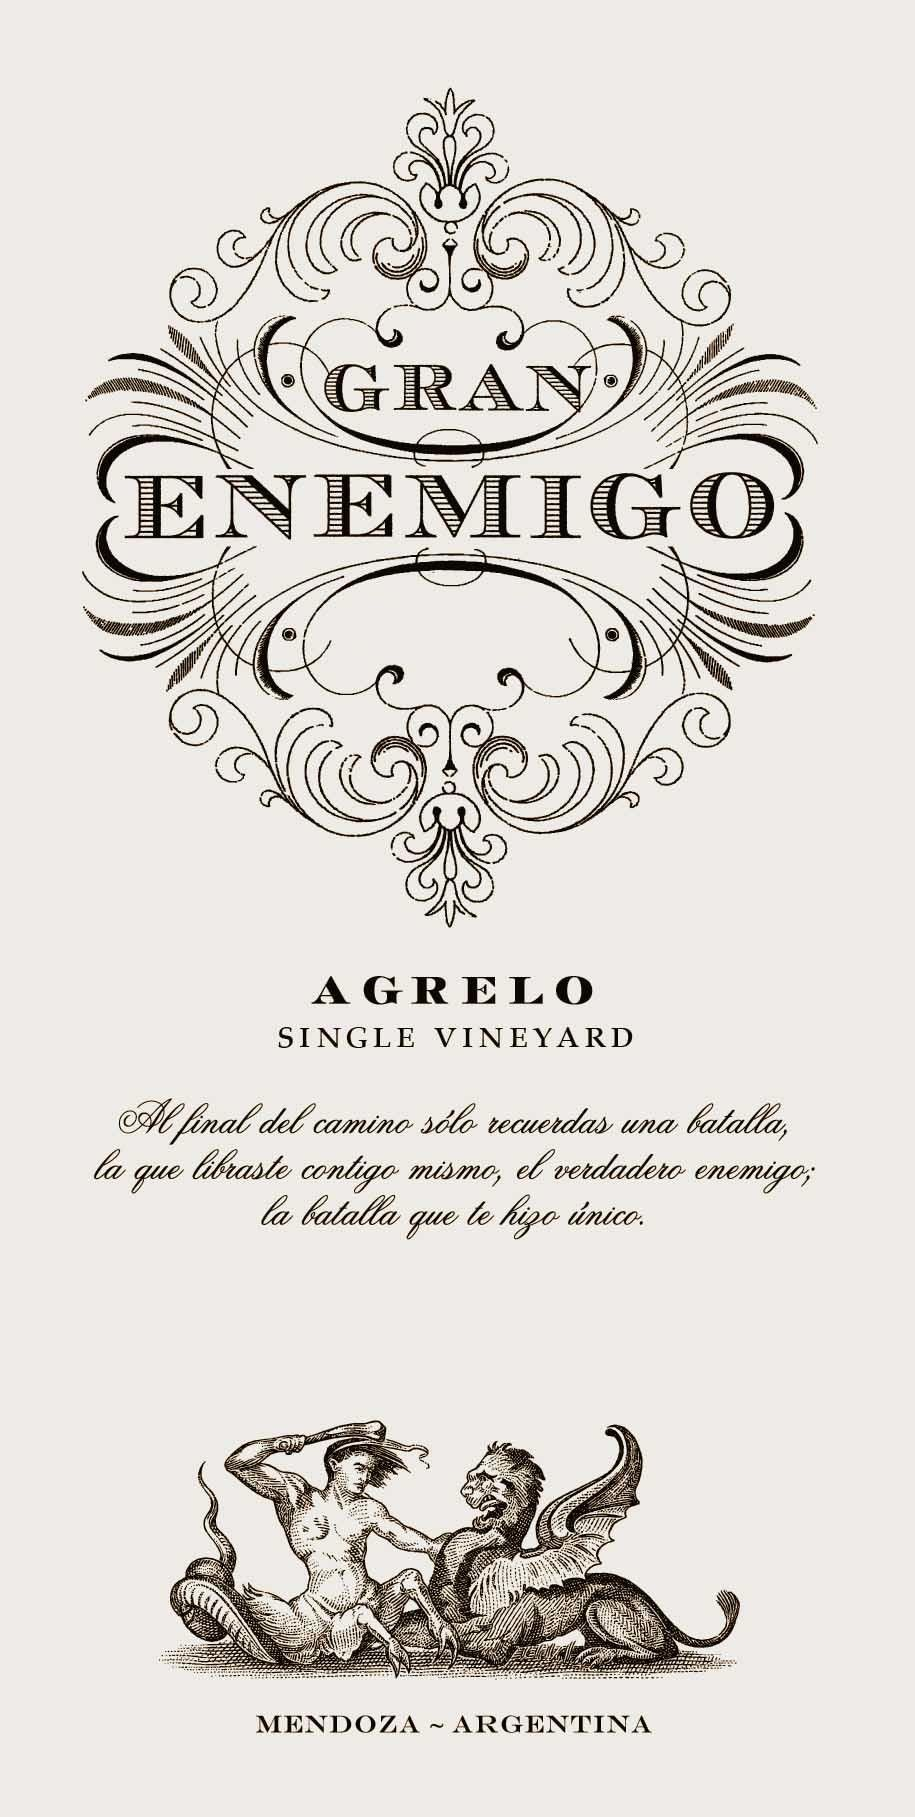 El Enemigo  Gran Enemigo Agrelo Single Vineyard 2014  Front Label